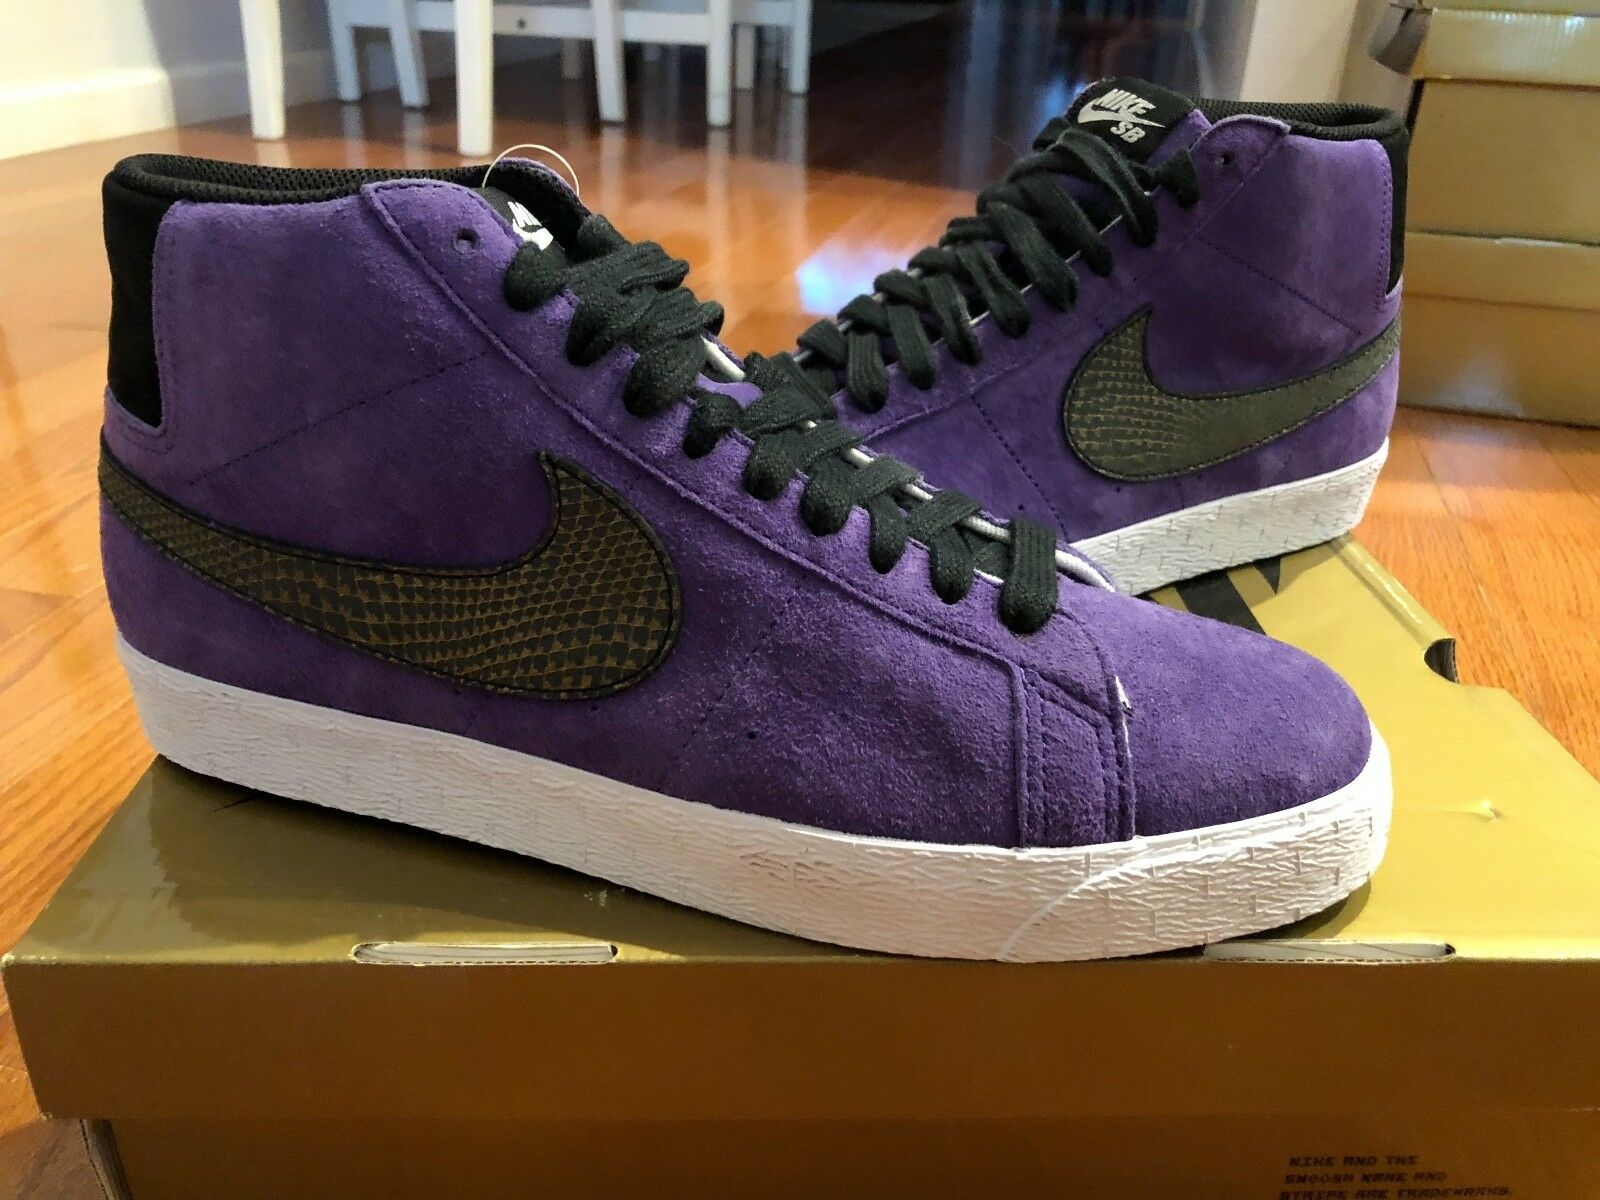 NIKE 2008 Purple Blazer Premium SB Varsity Purple 2008 SUPREME GOLD BOX RARE 314070 501 8b69e1